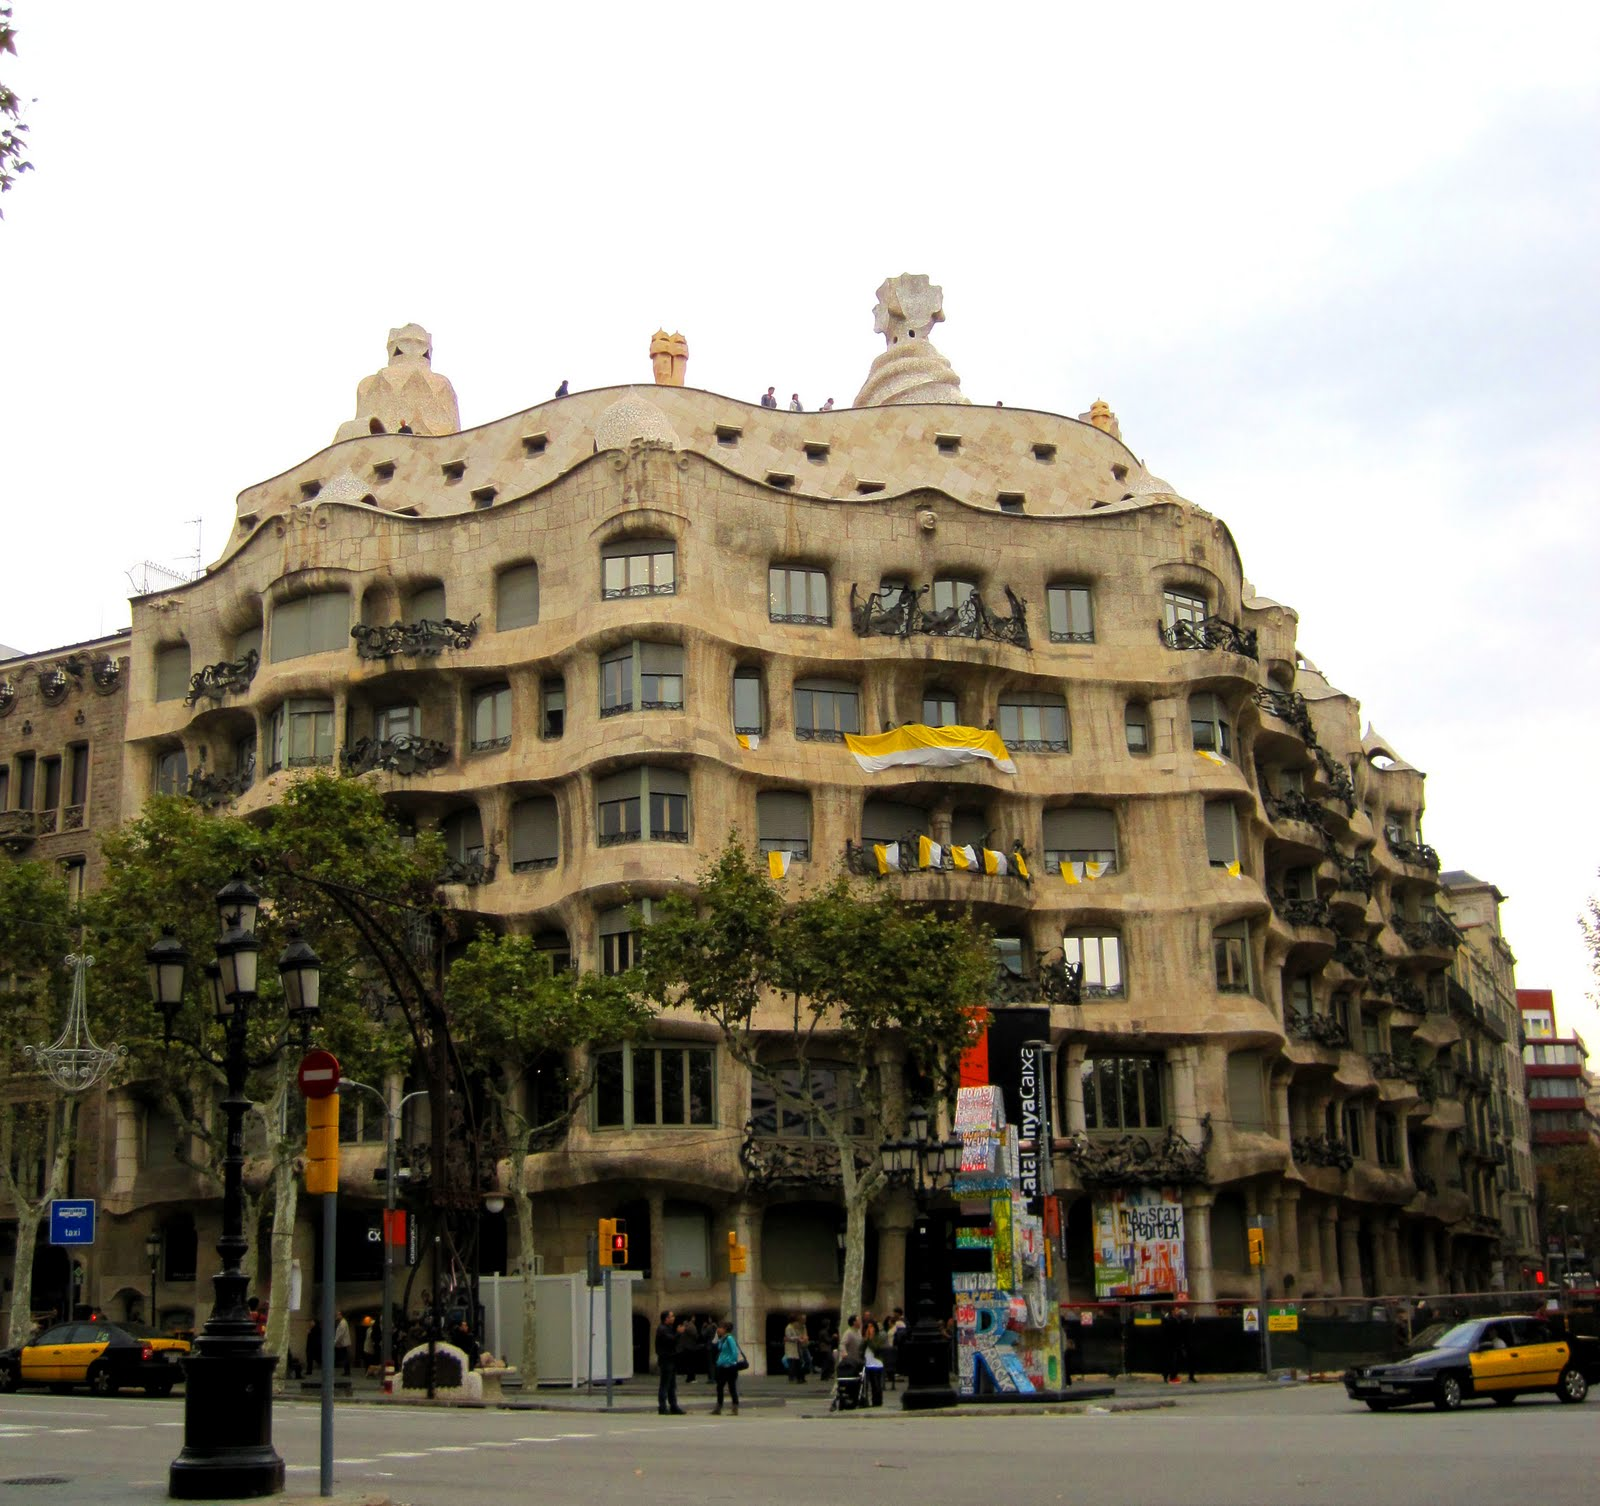 Barcelona Apartment Building: Architect Design™: Casa Milà